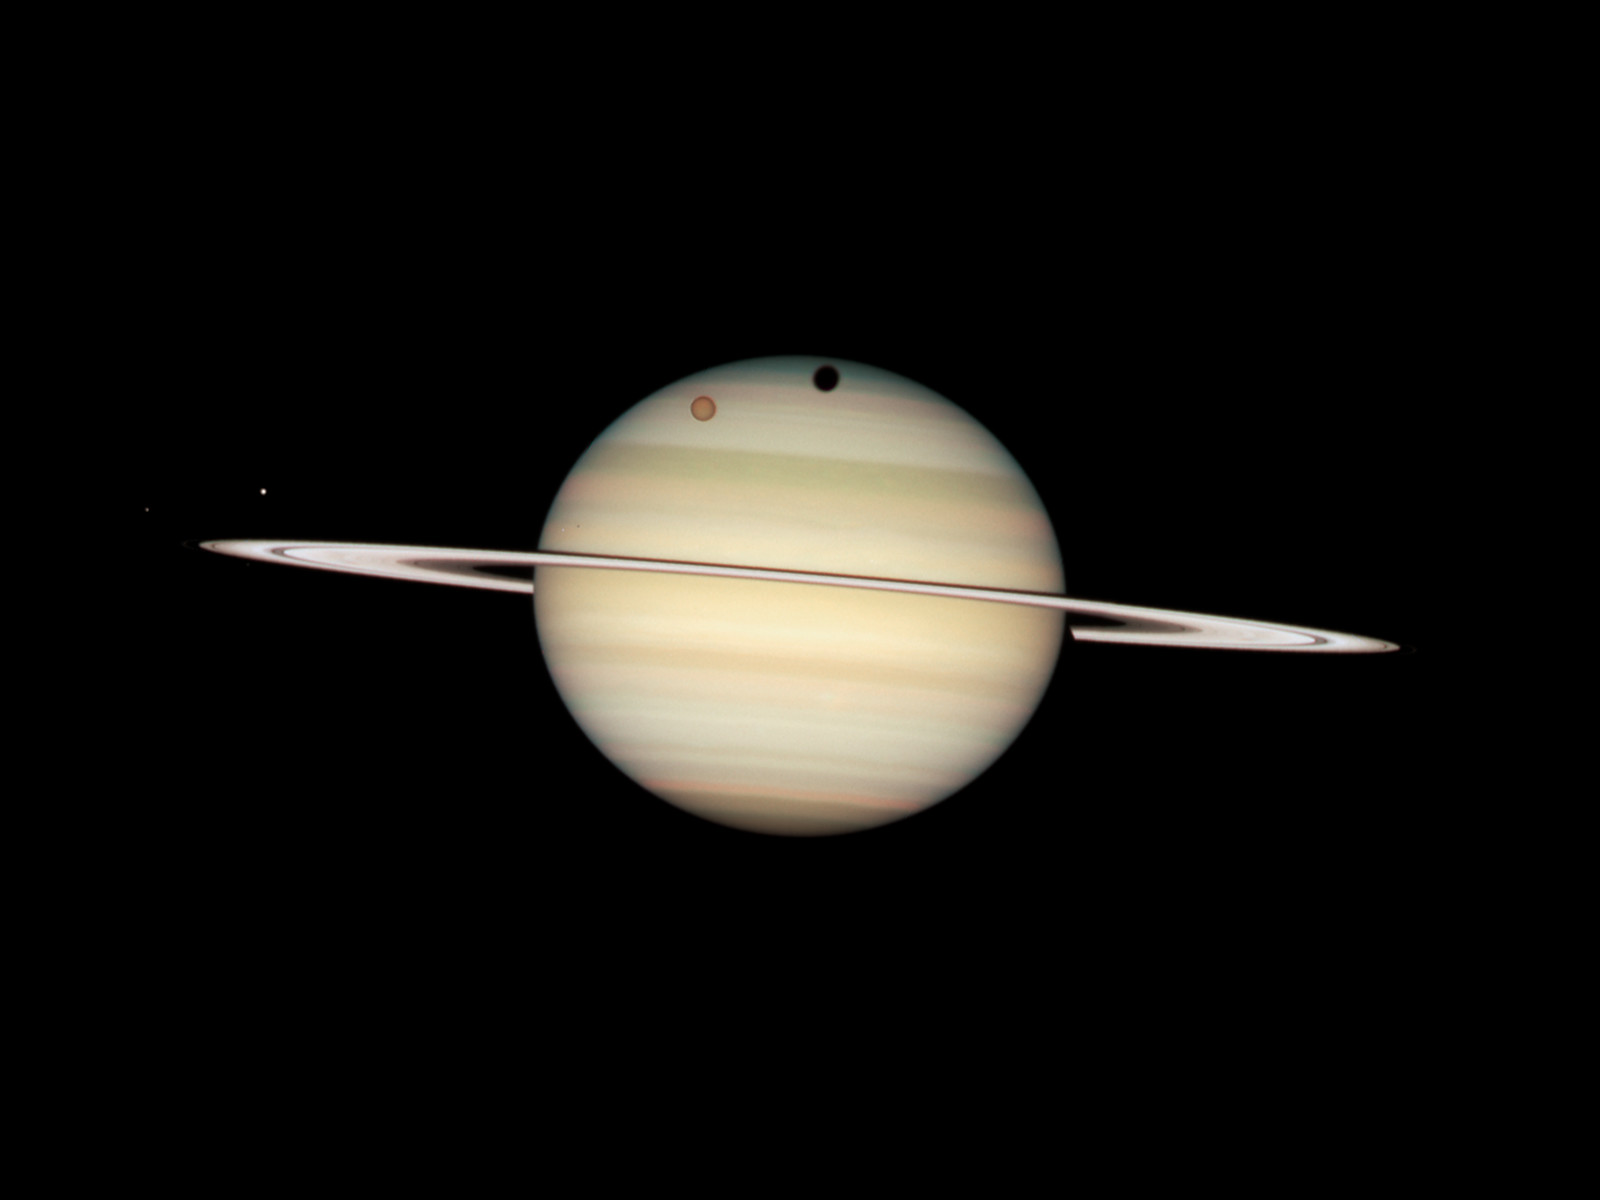 hubble images of saturn - photo #35